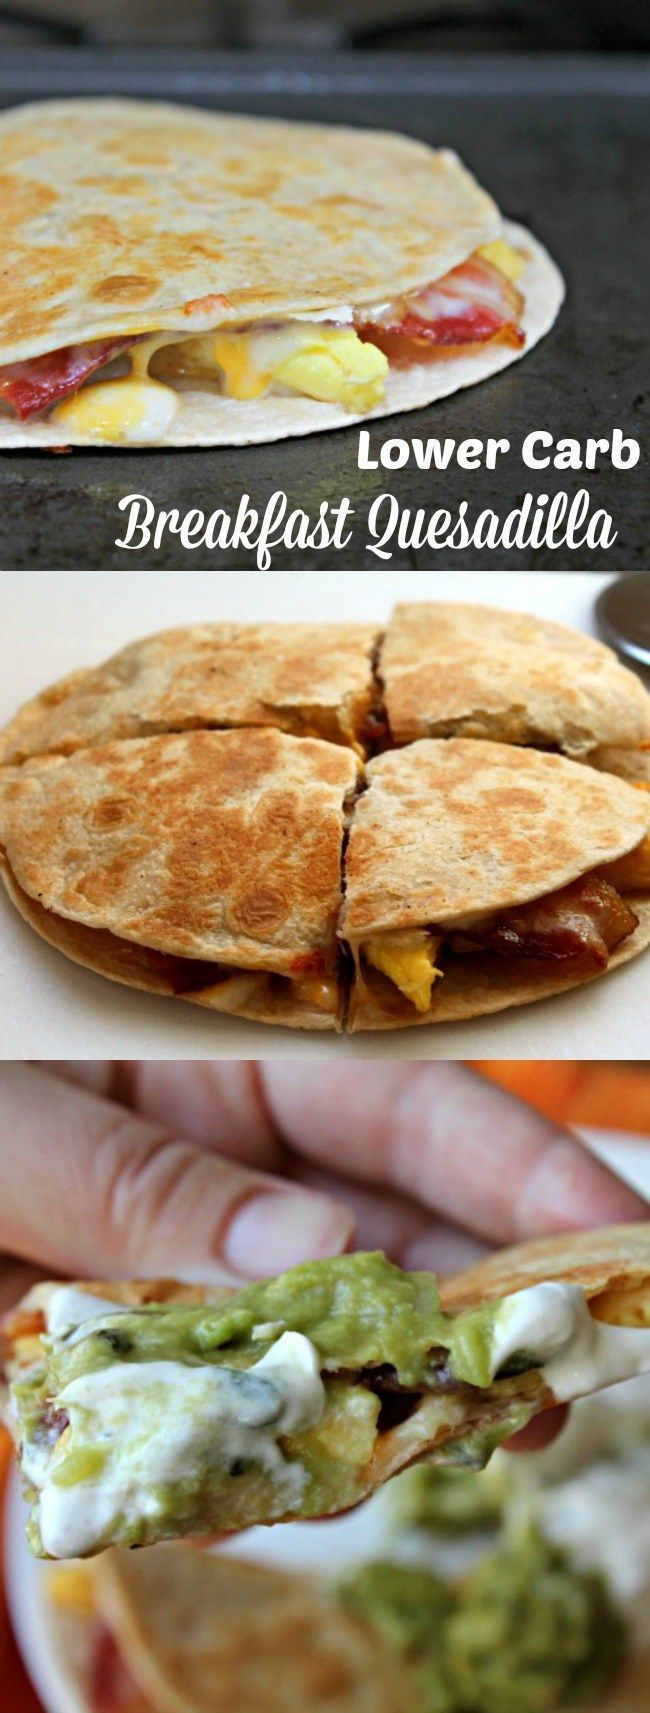 LOWER CARB BREAKFAST QUESADILLA! Quesadillas aren't just for dinner ...